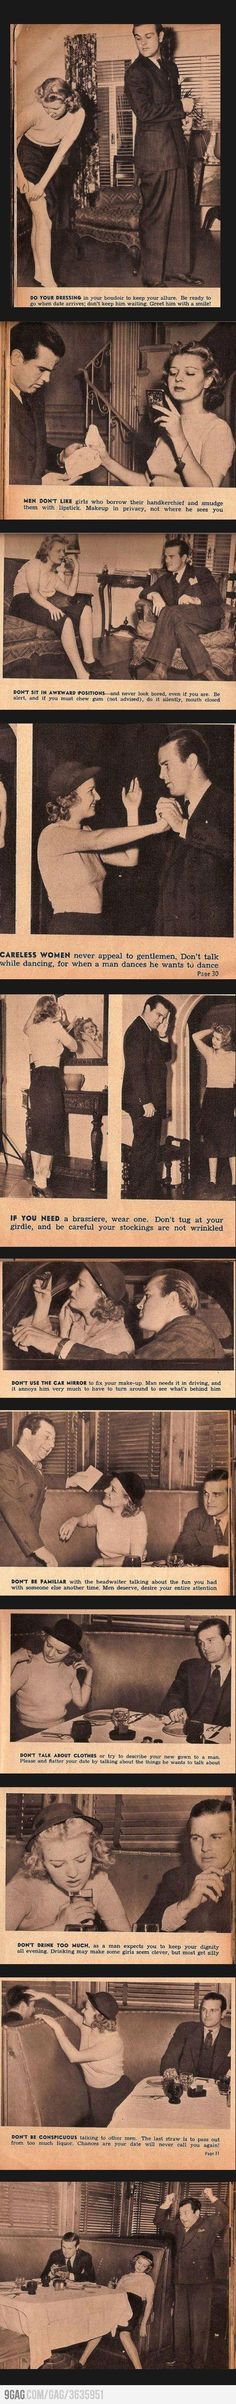 Vintage tips for women